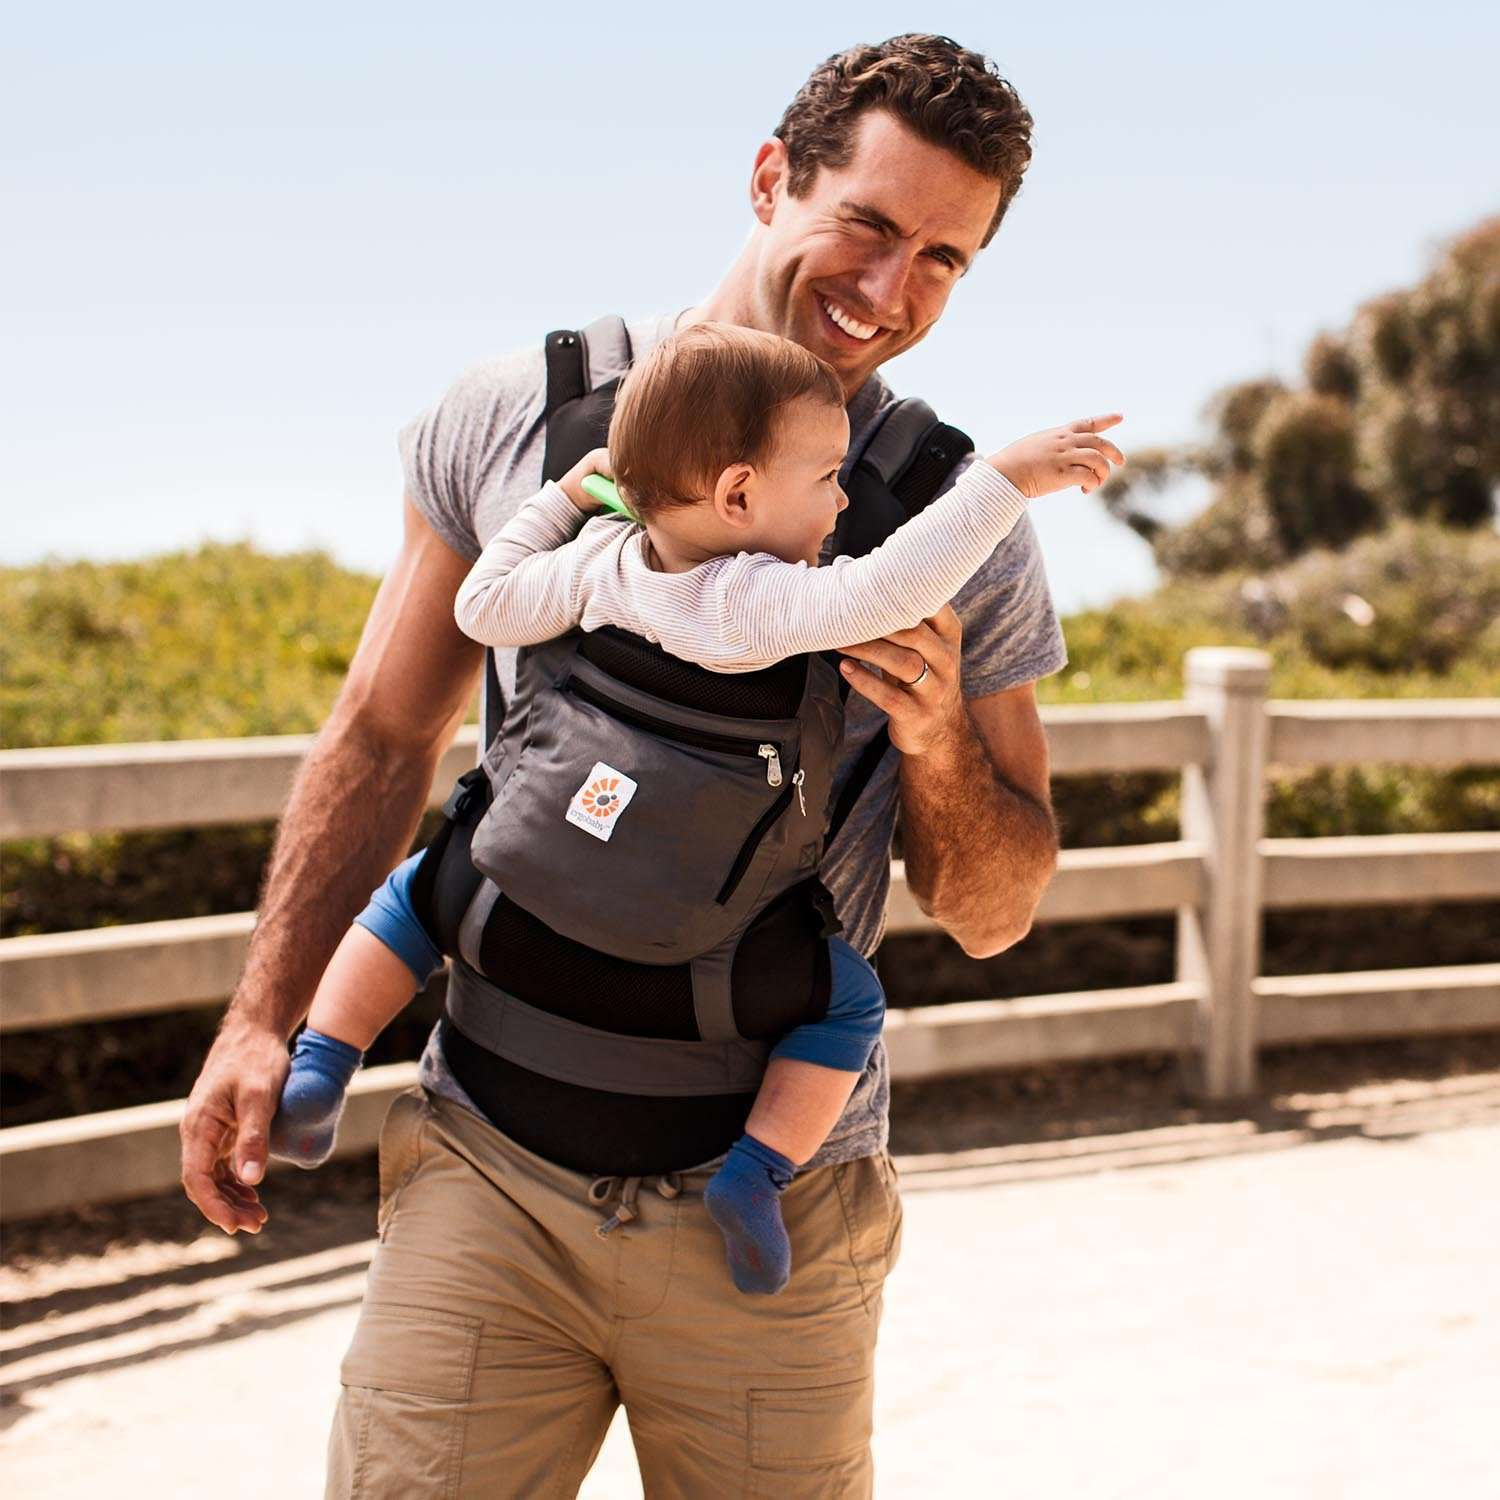 f223b516bb4 Best Moisture Wicking  Ergo Performance Baby Carrier